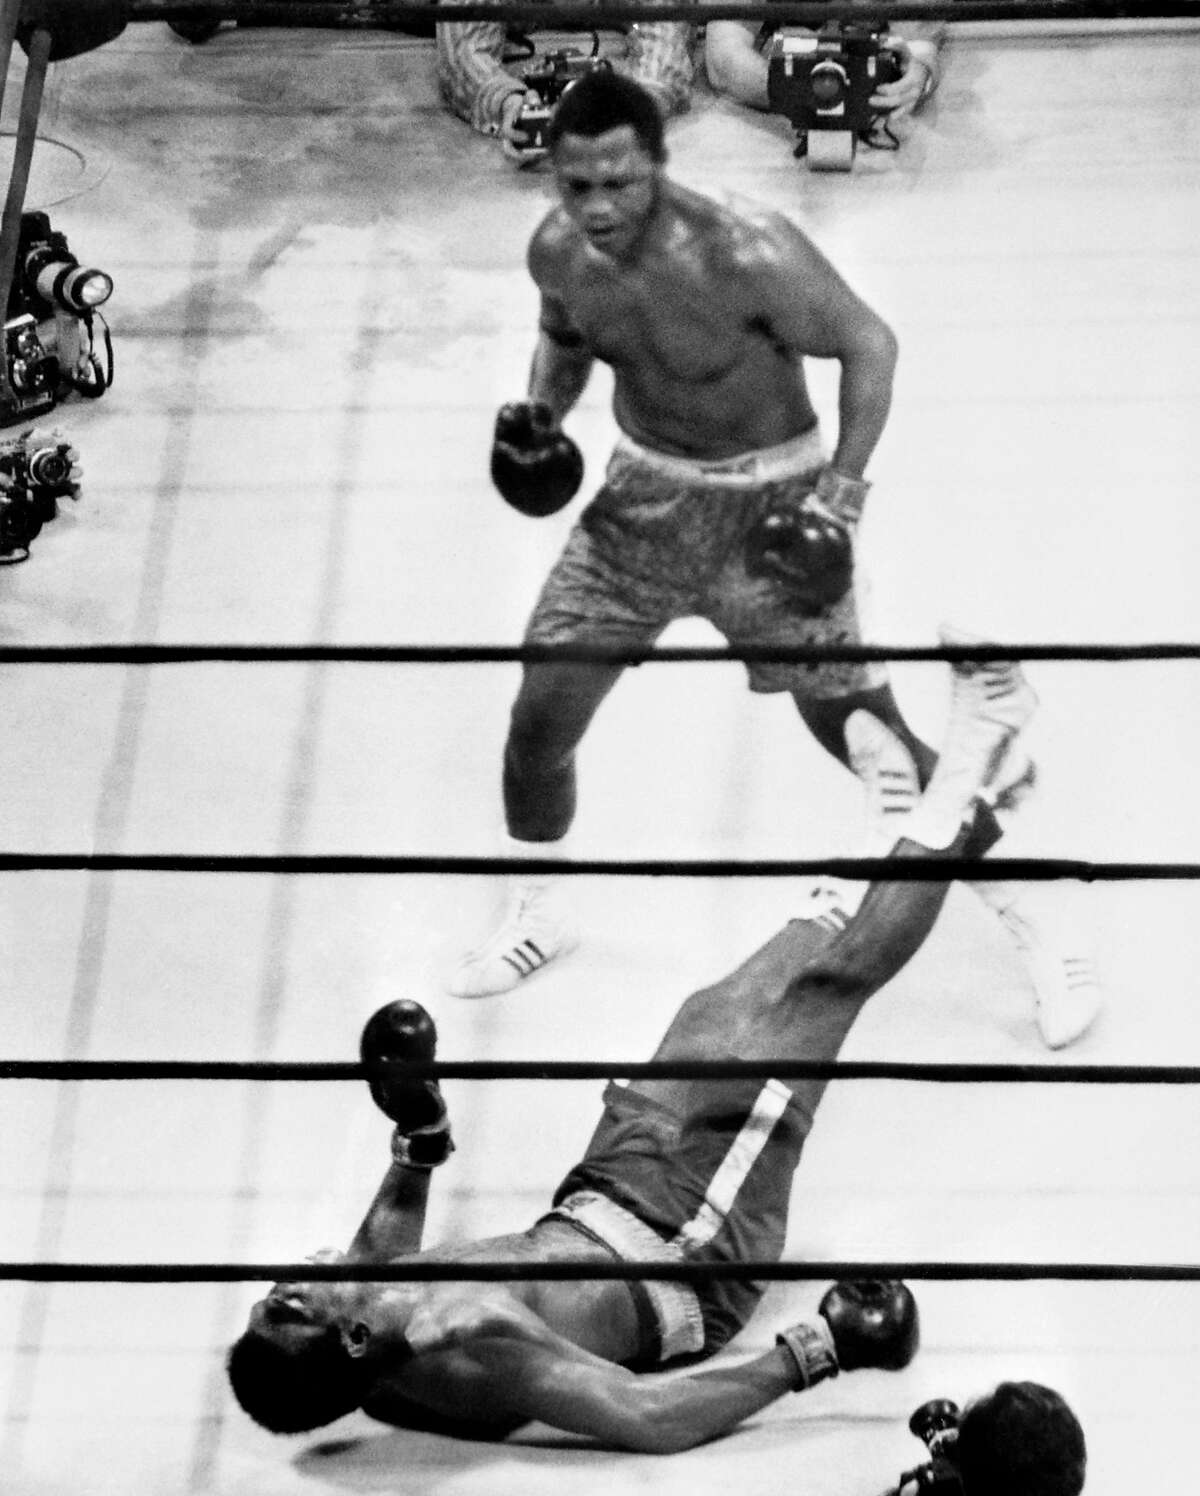 (FILES) This file picture taken on March 8, 1971 shows US heavyweight boxing champion Joe Frazier (top) standing over compatriot Muhammad Ali as he wins the fight called the